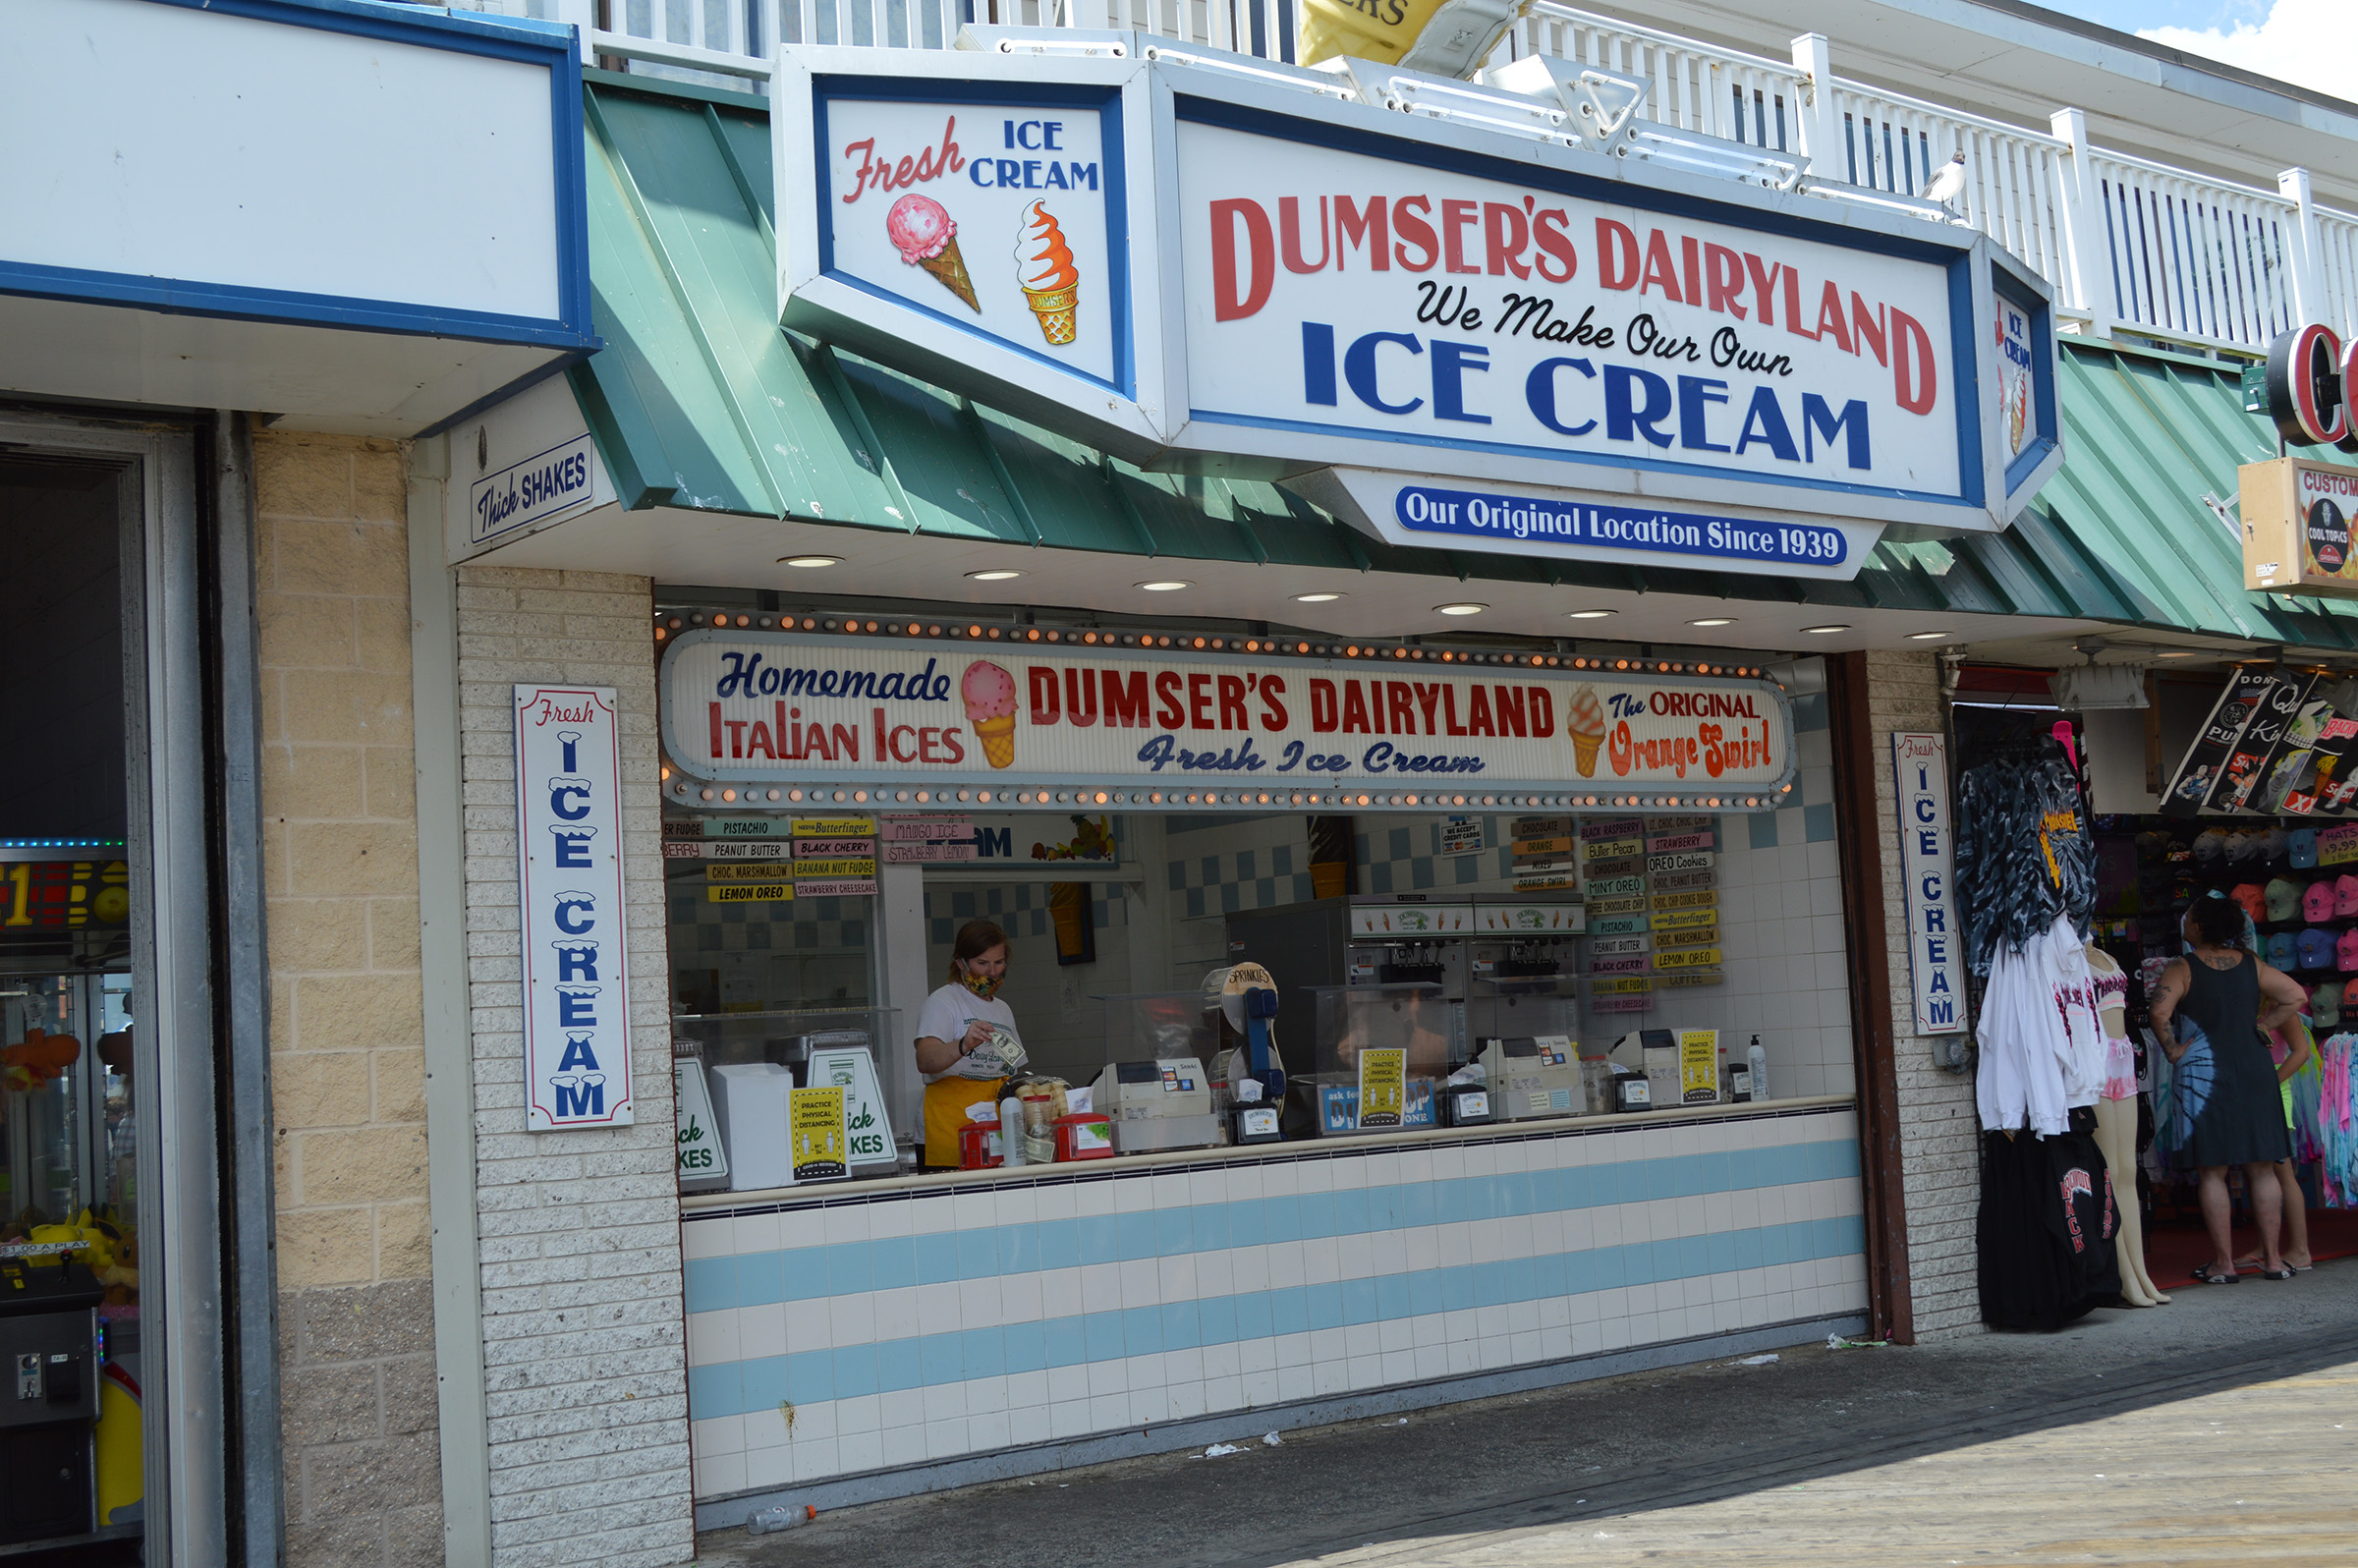 For Dumser's, It Remains 'All About The Ice Cream' 80 Years Later